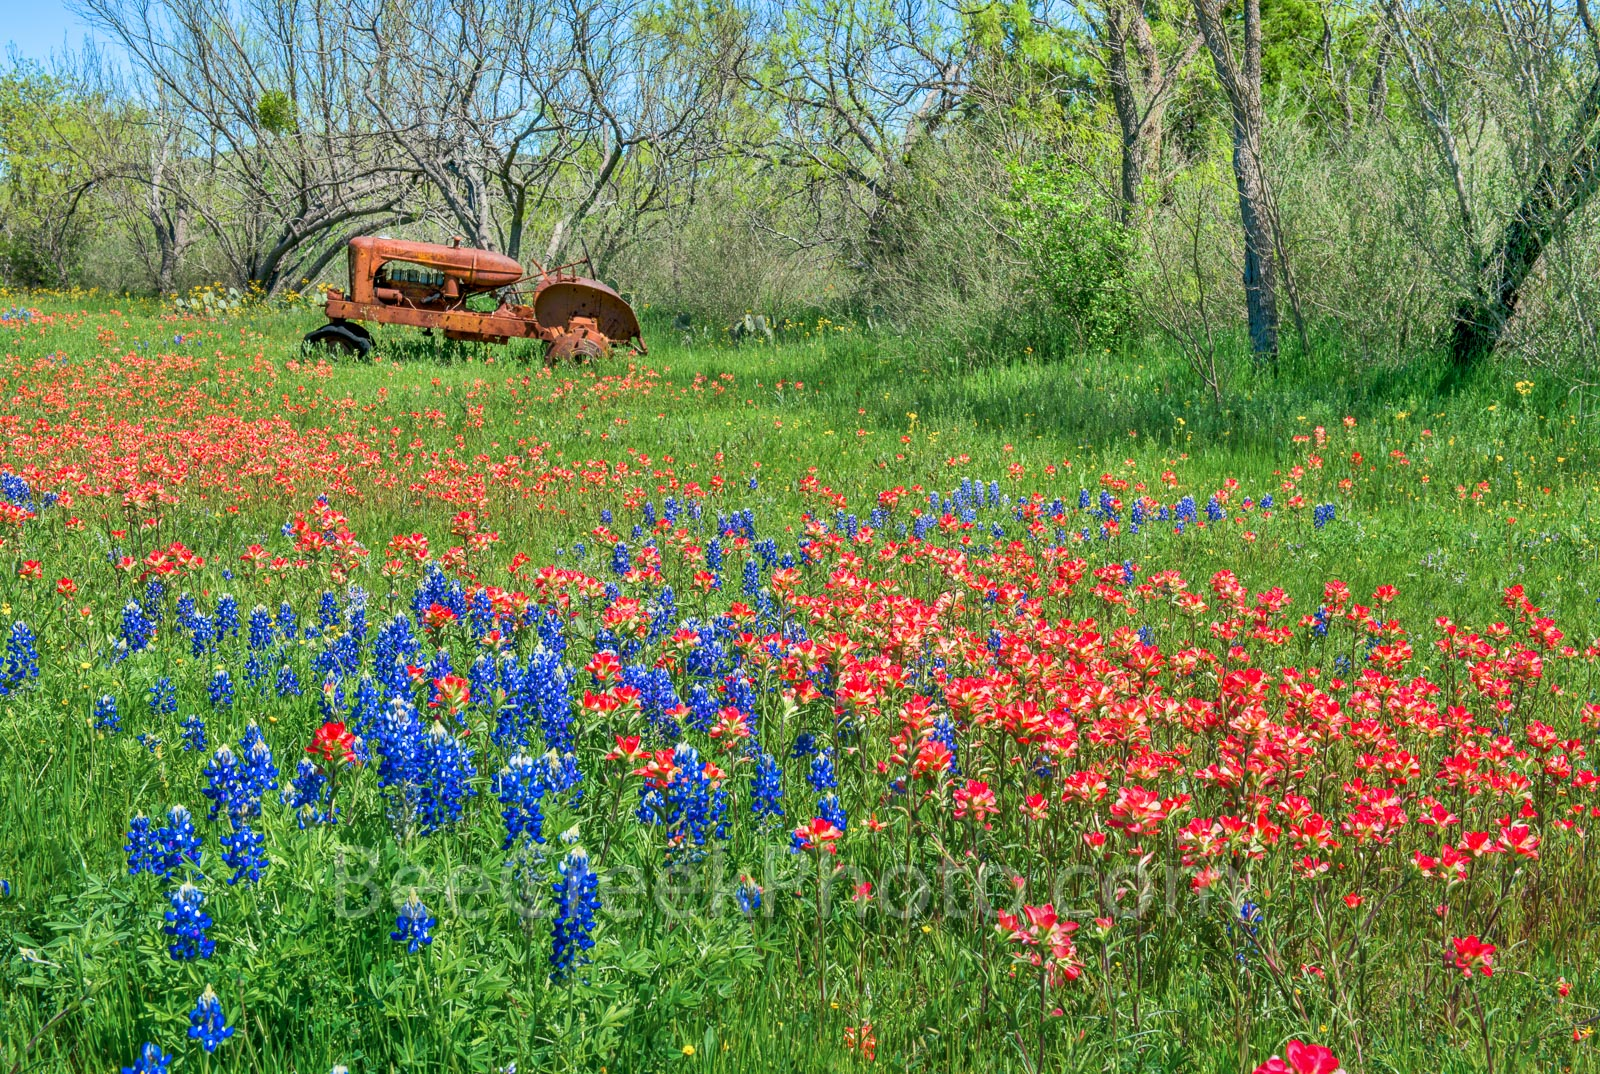 Wildflowers, bluebonnets, bluebonnet, indian paintbrush, flower, pasture, tractor, rusty, farm equipement, red, blue, colorful, Texas Hill Country, images of texas, spring, Texas wildflowers, spring f